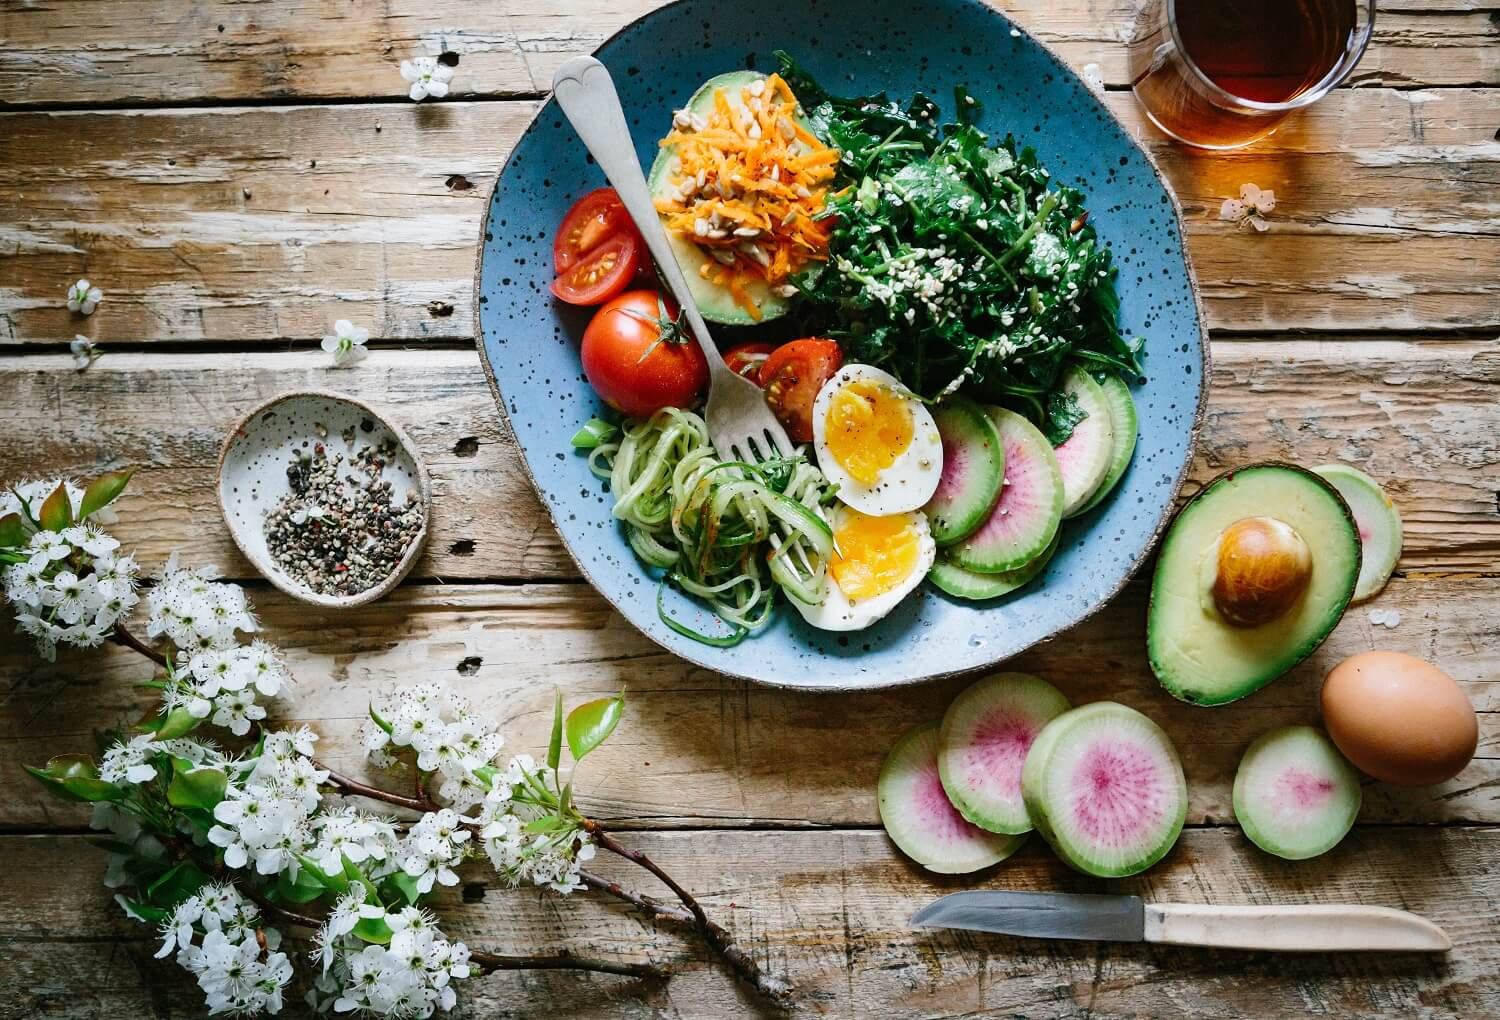 Confused by different diets or wondering whether to give Keto or Paleo a go? What are they really all about, what are their good and bad points and are they the answer to midlife weightloss? I'll tell you the good, the bad and the ugly about the latest trends you might be tempted by. midlifemenu.com/blog/keto-or-paleo